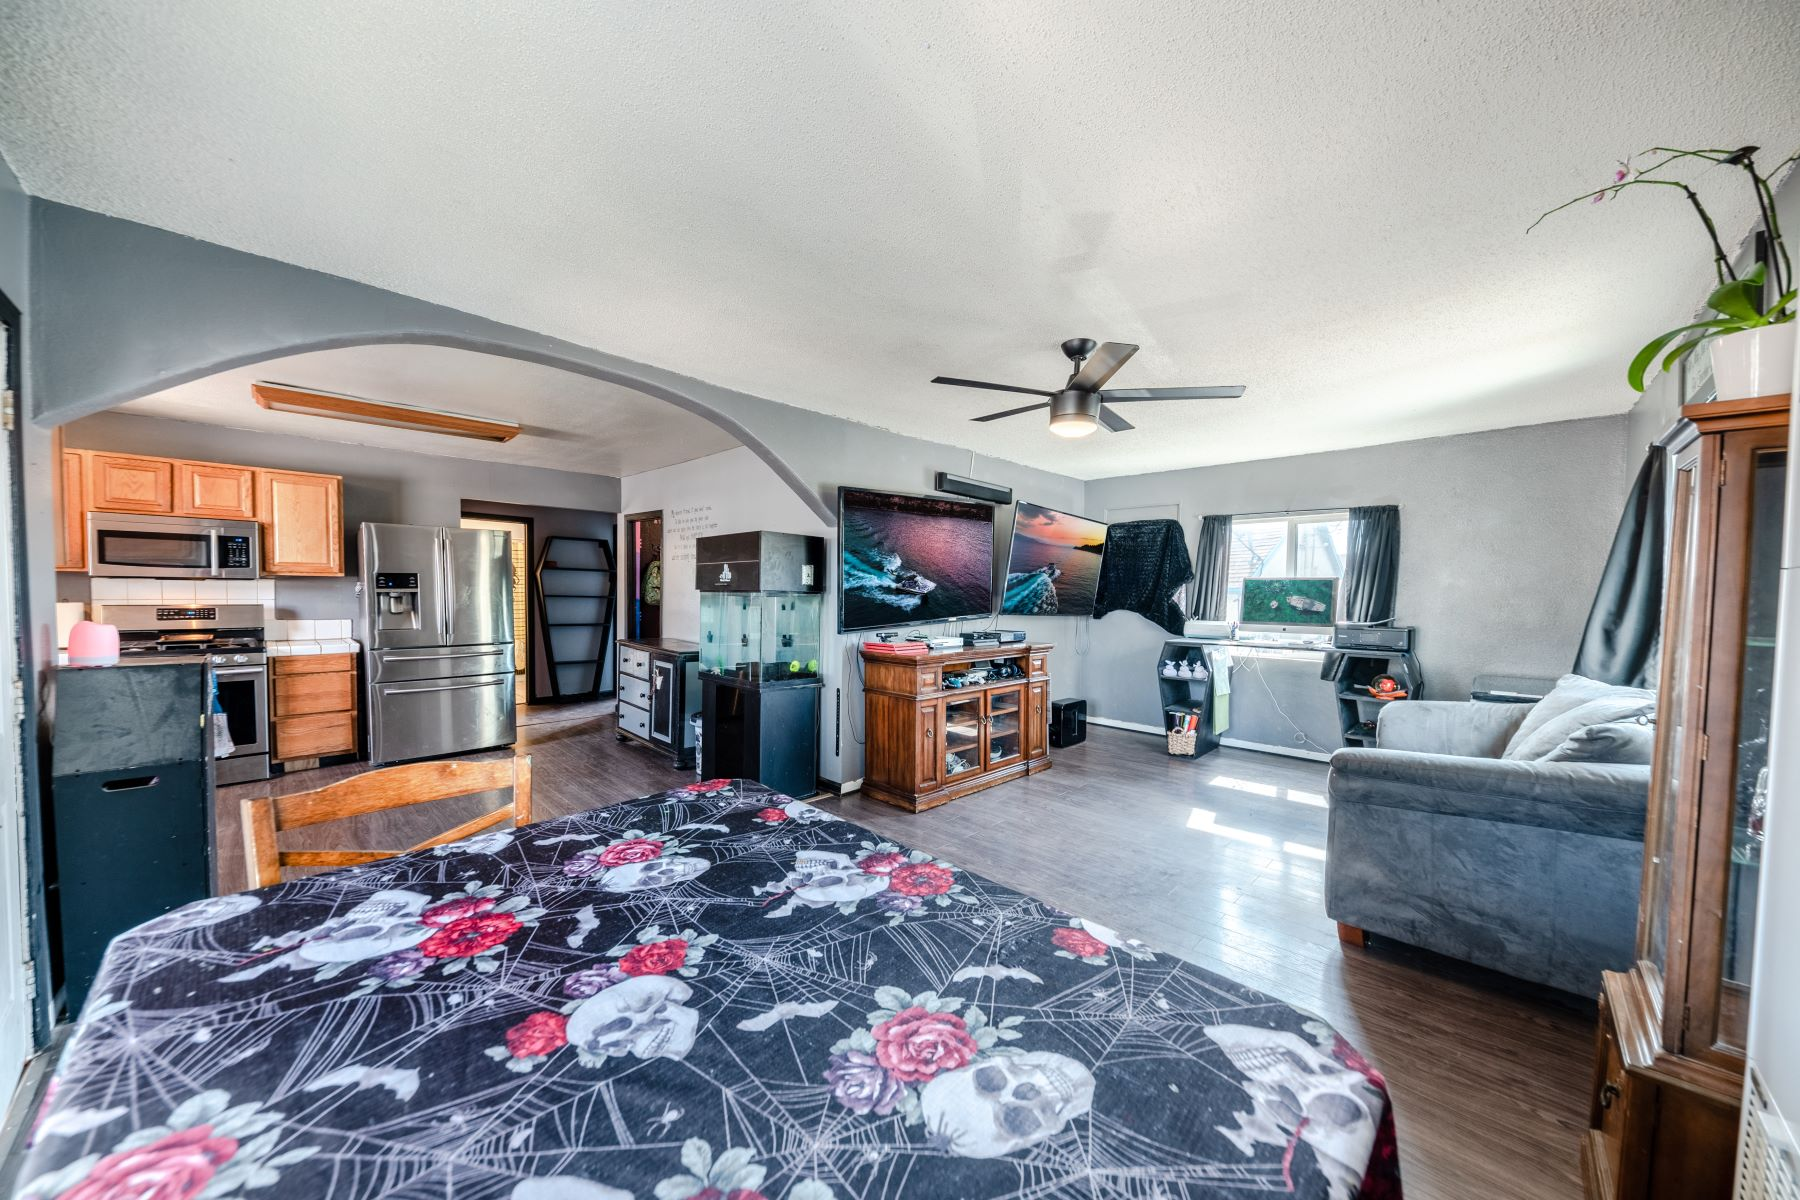 Single Family Homes for Sale at Ideal Starter Home in Sparks 1461 G Street Sparks, Nevada 89431 United States